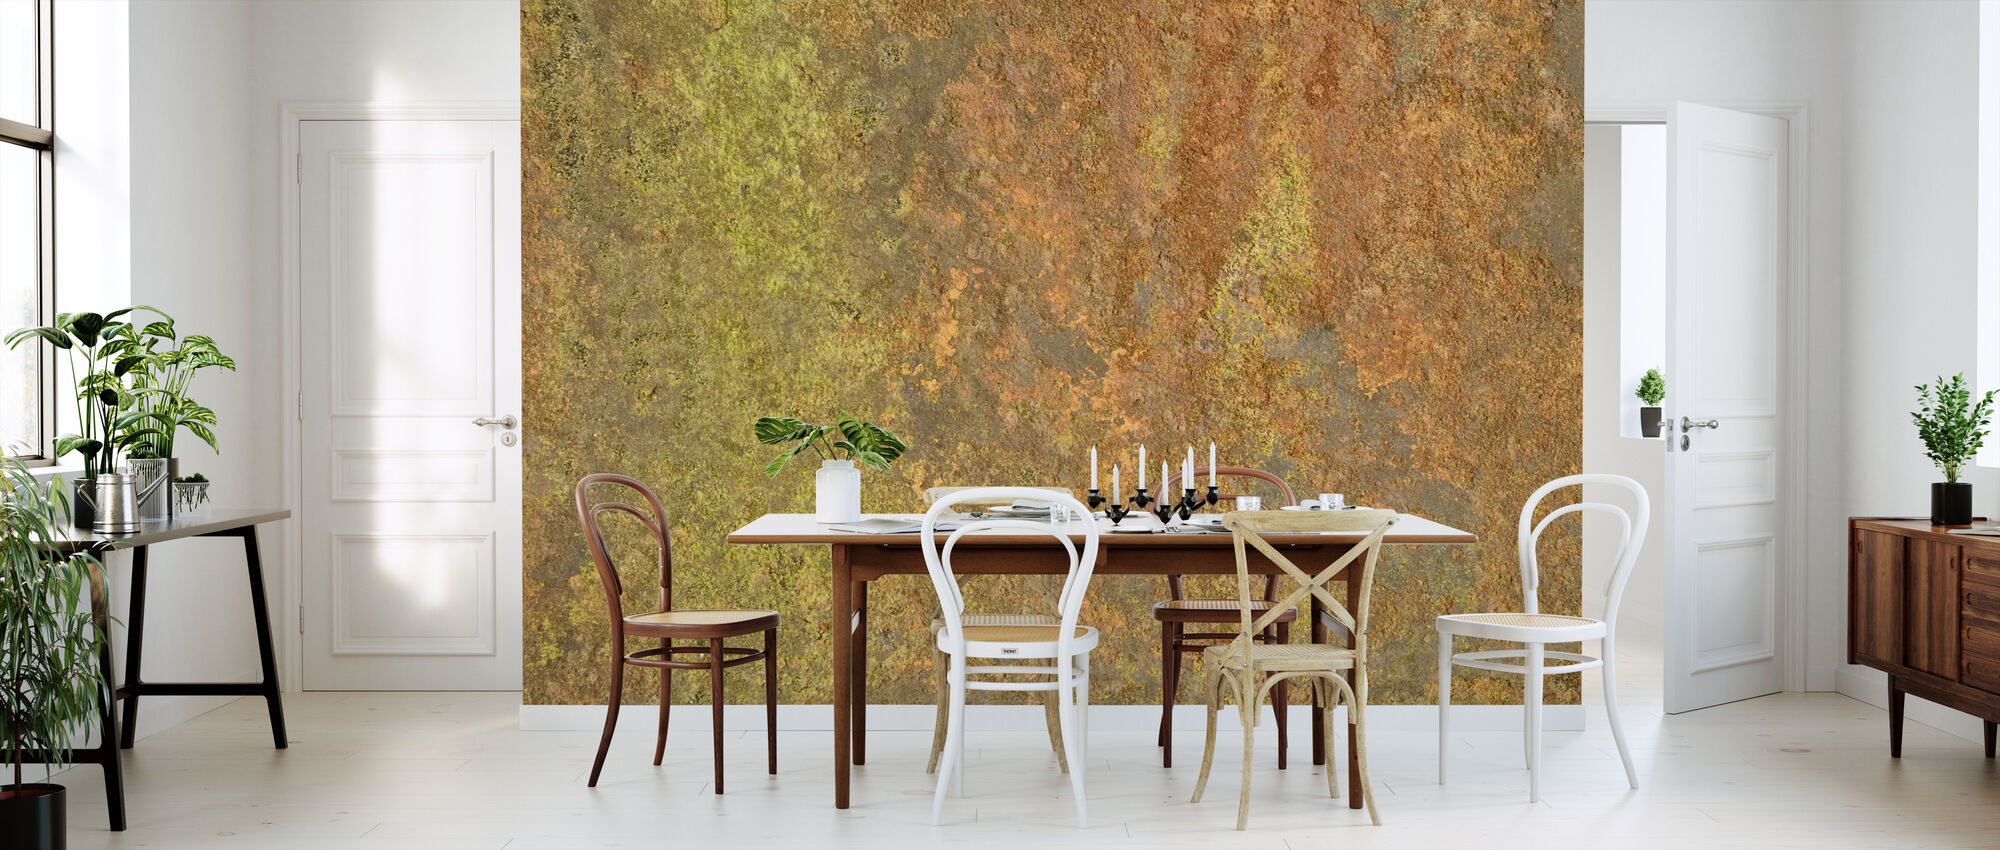 Metal Oxidation - Wallpaper - Kitchen